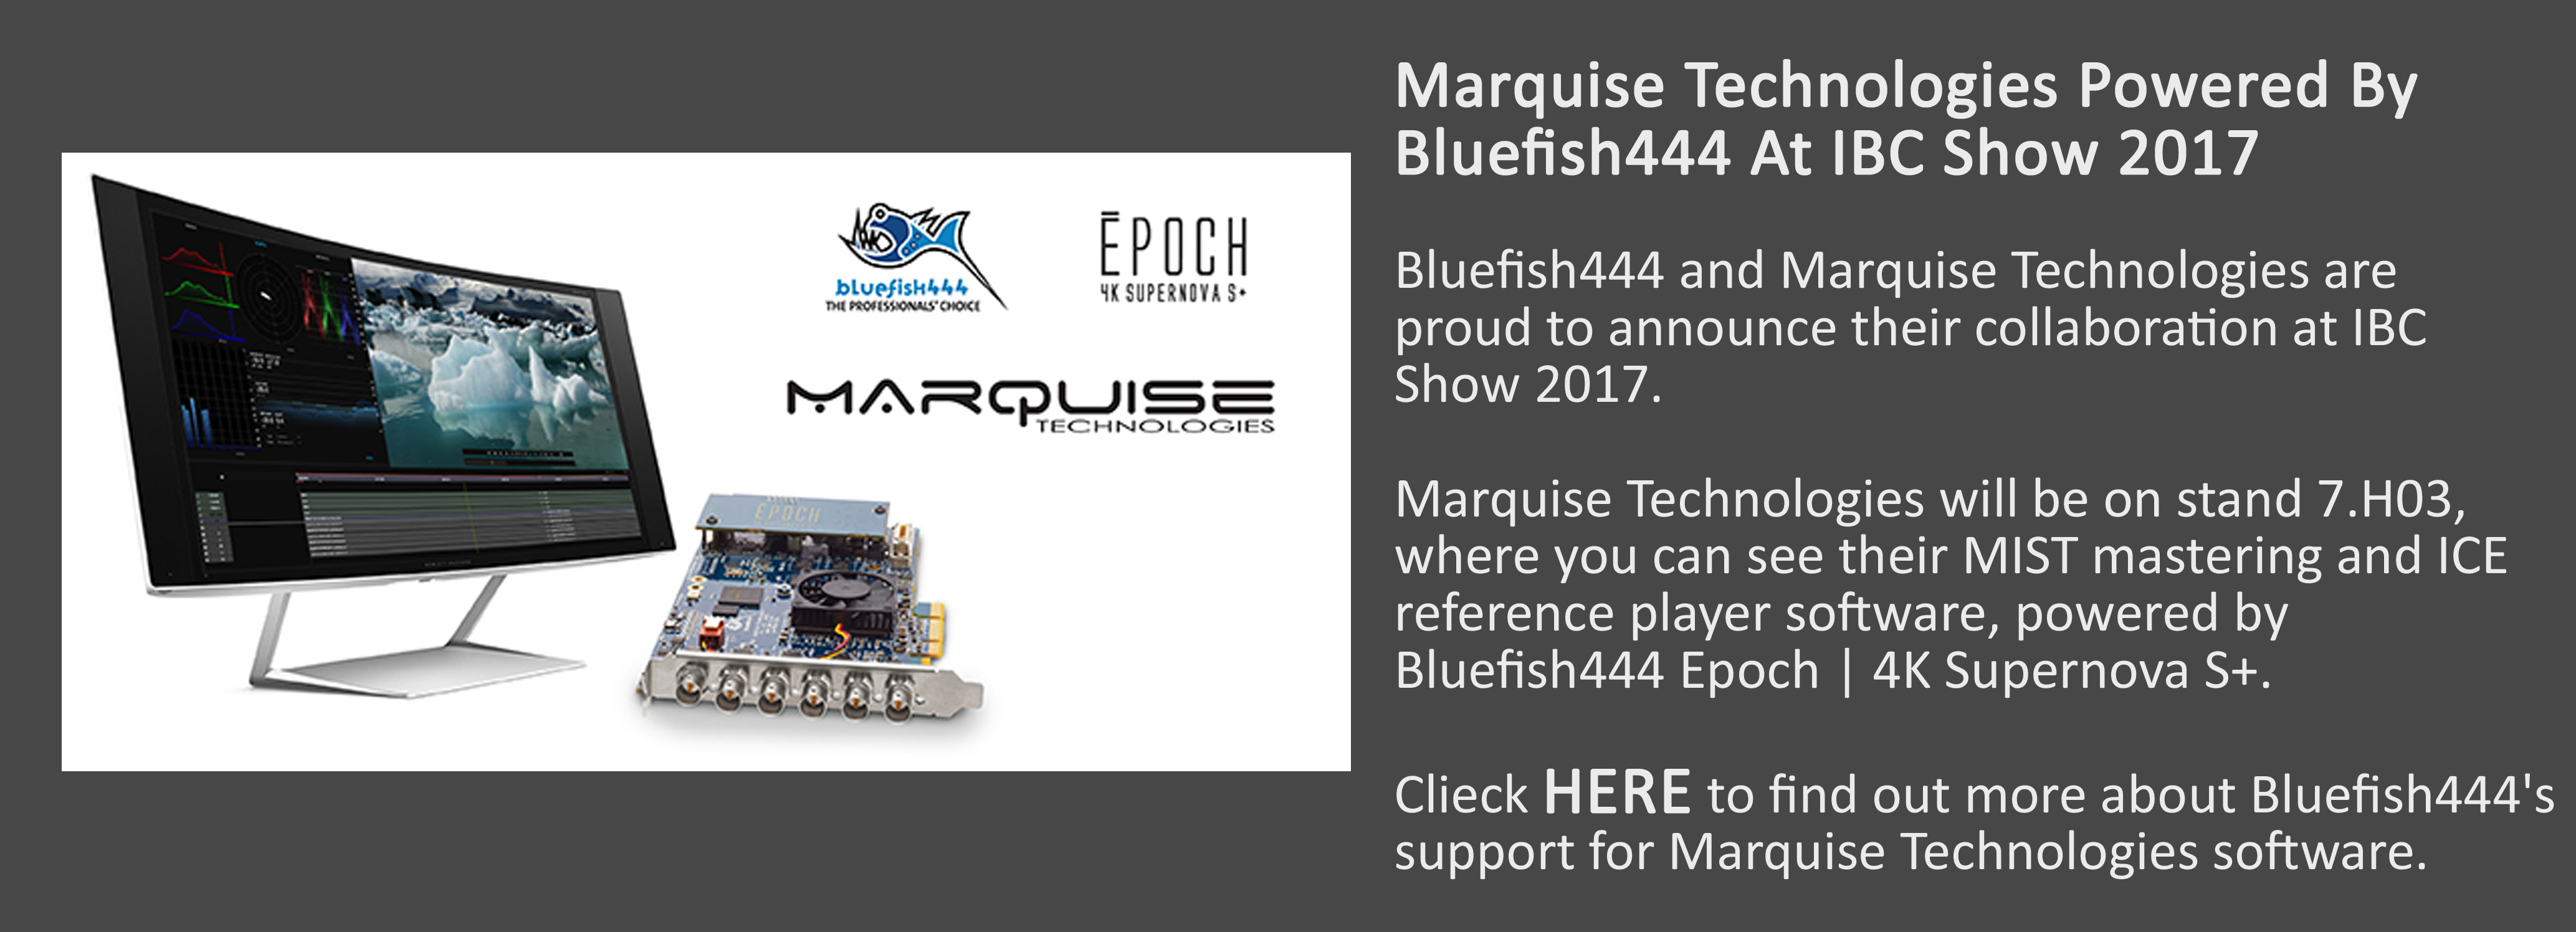 Bluefish444_Marquise Technologies Powered By Bluefish444 At IBC 2017